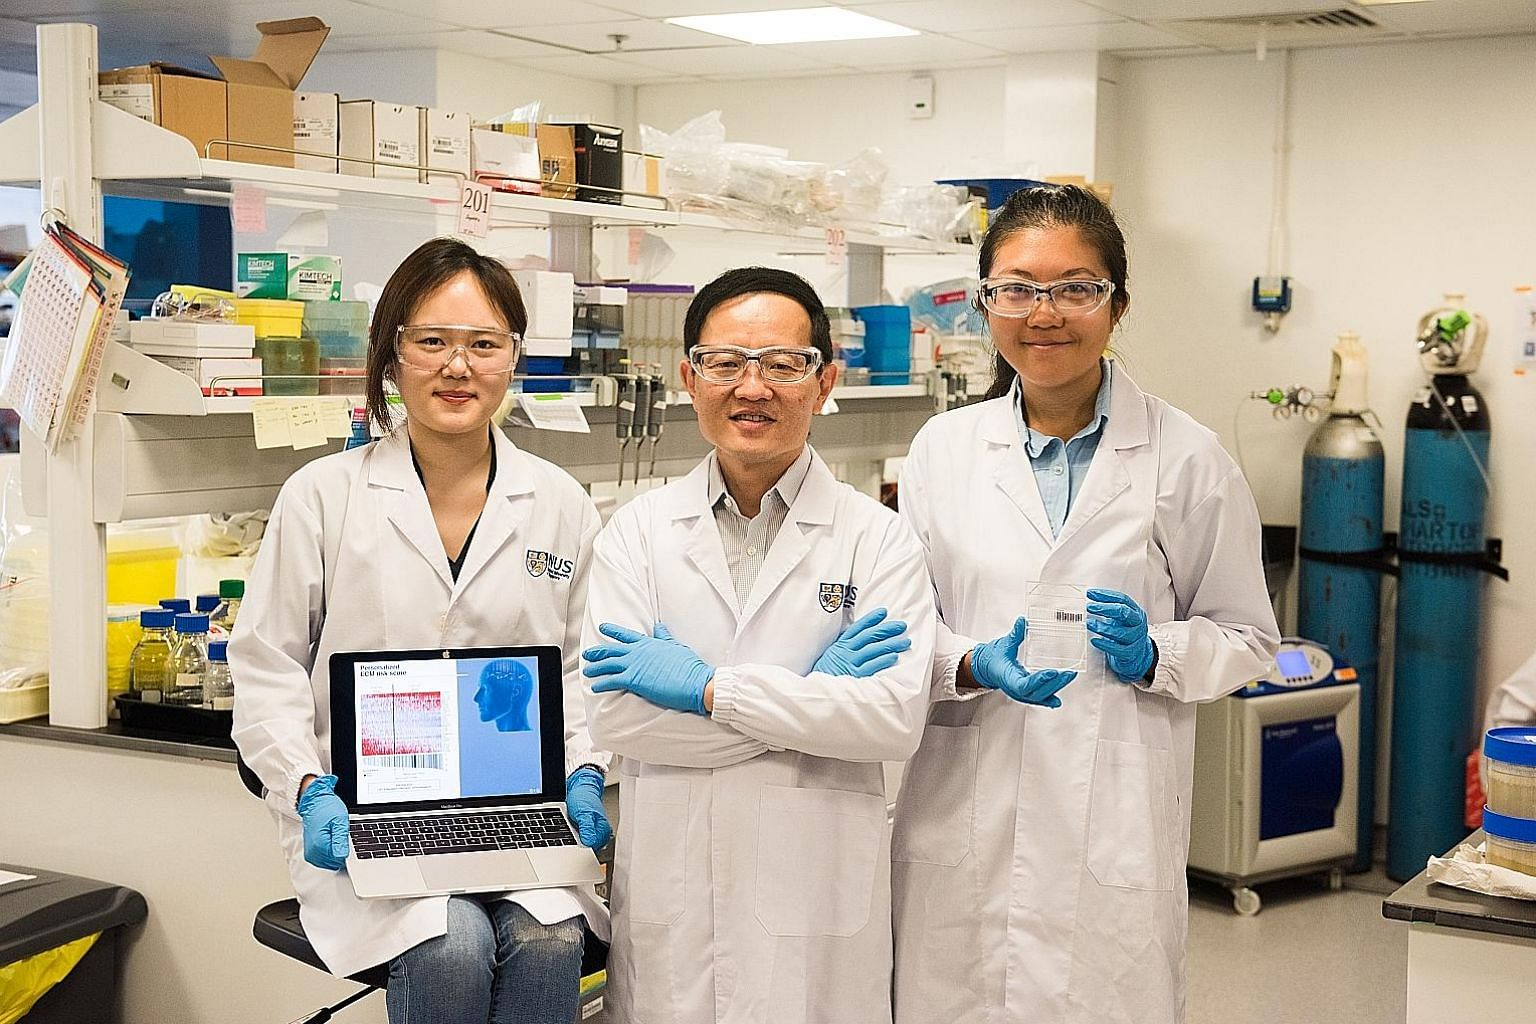 From left: PhD student Lim Su Bin from the NUS Graduate School for Integrative Sciences and Engineering; Professor Lim Chwee Teck, principal investigator of the Mechanobiology Institute; and Dr Khoo Bee Luan, senior postdoctoral associate at the Sing